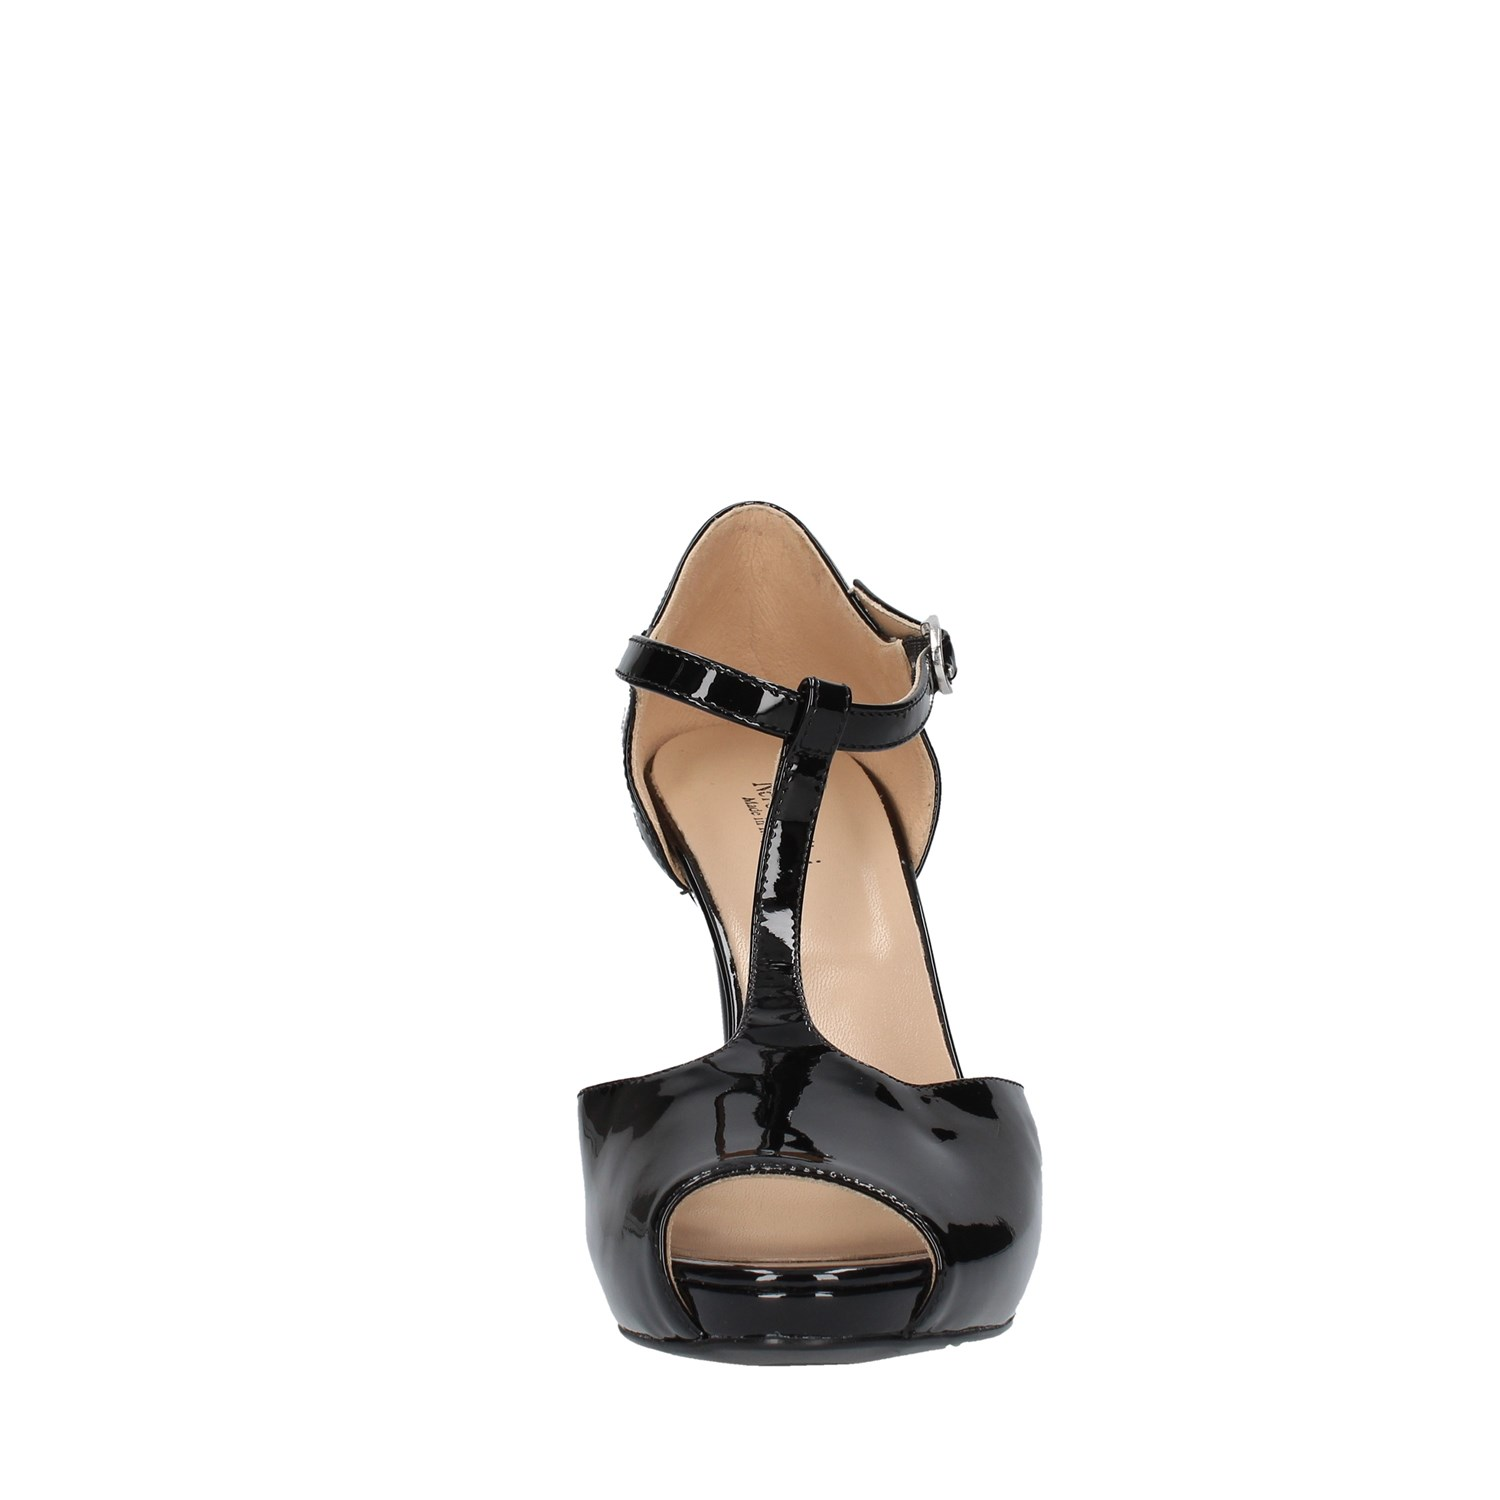 Nero Giardini Shoes Woman Decolletè BLACK P717381DE